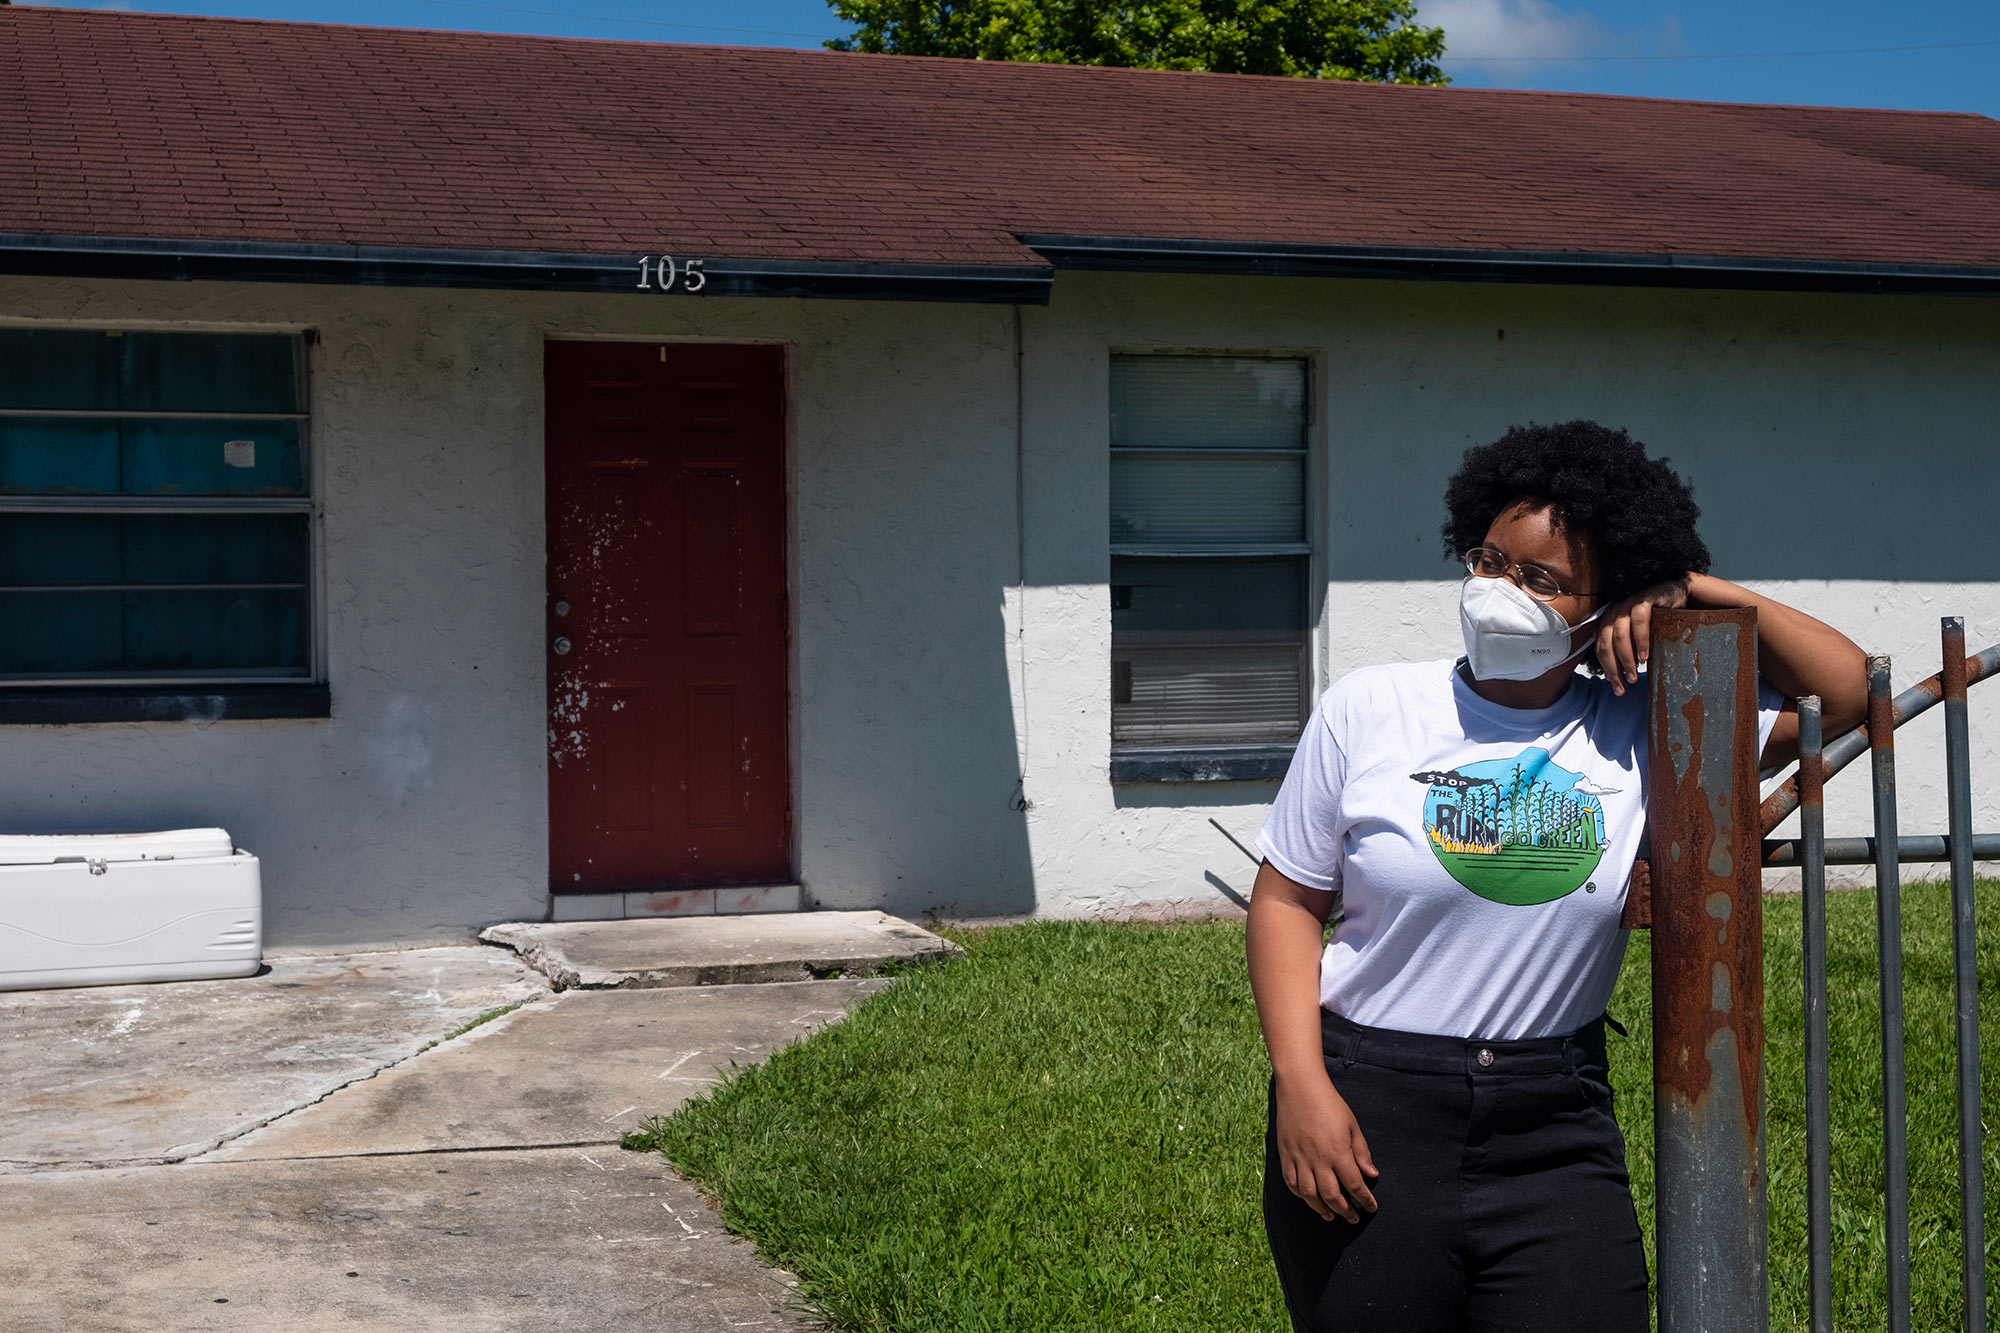 Kil'mari Phillips stands outside her home in South Bay, Florida — a few hundred feet away from Rosenwald Elementary School and the acres of sugarcane adjacent to it.